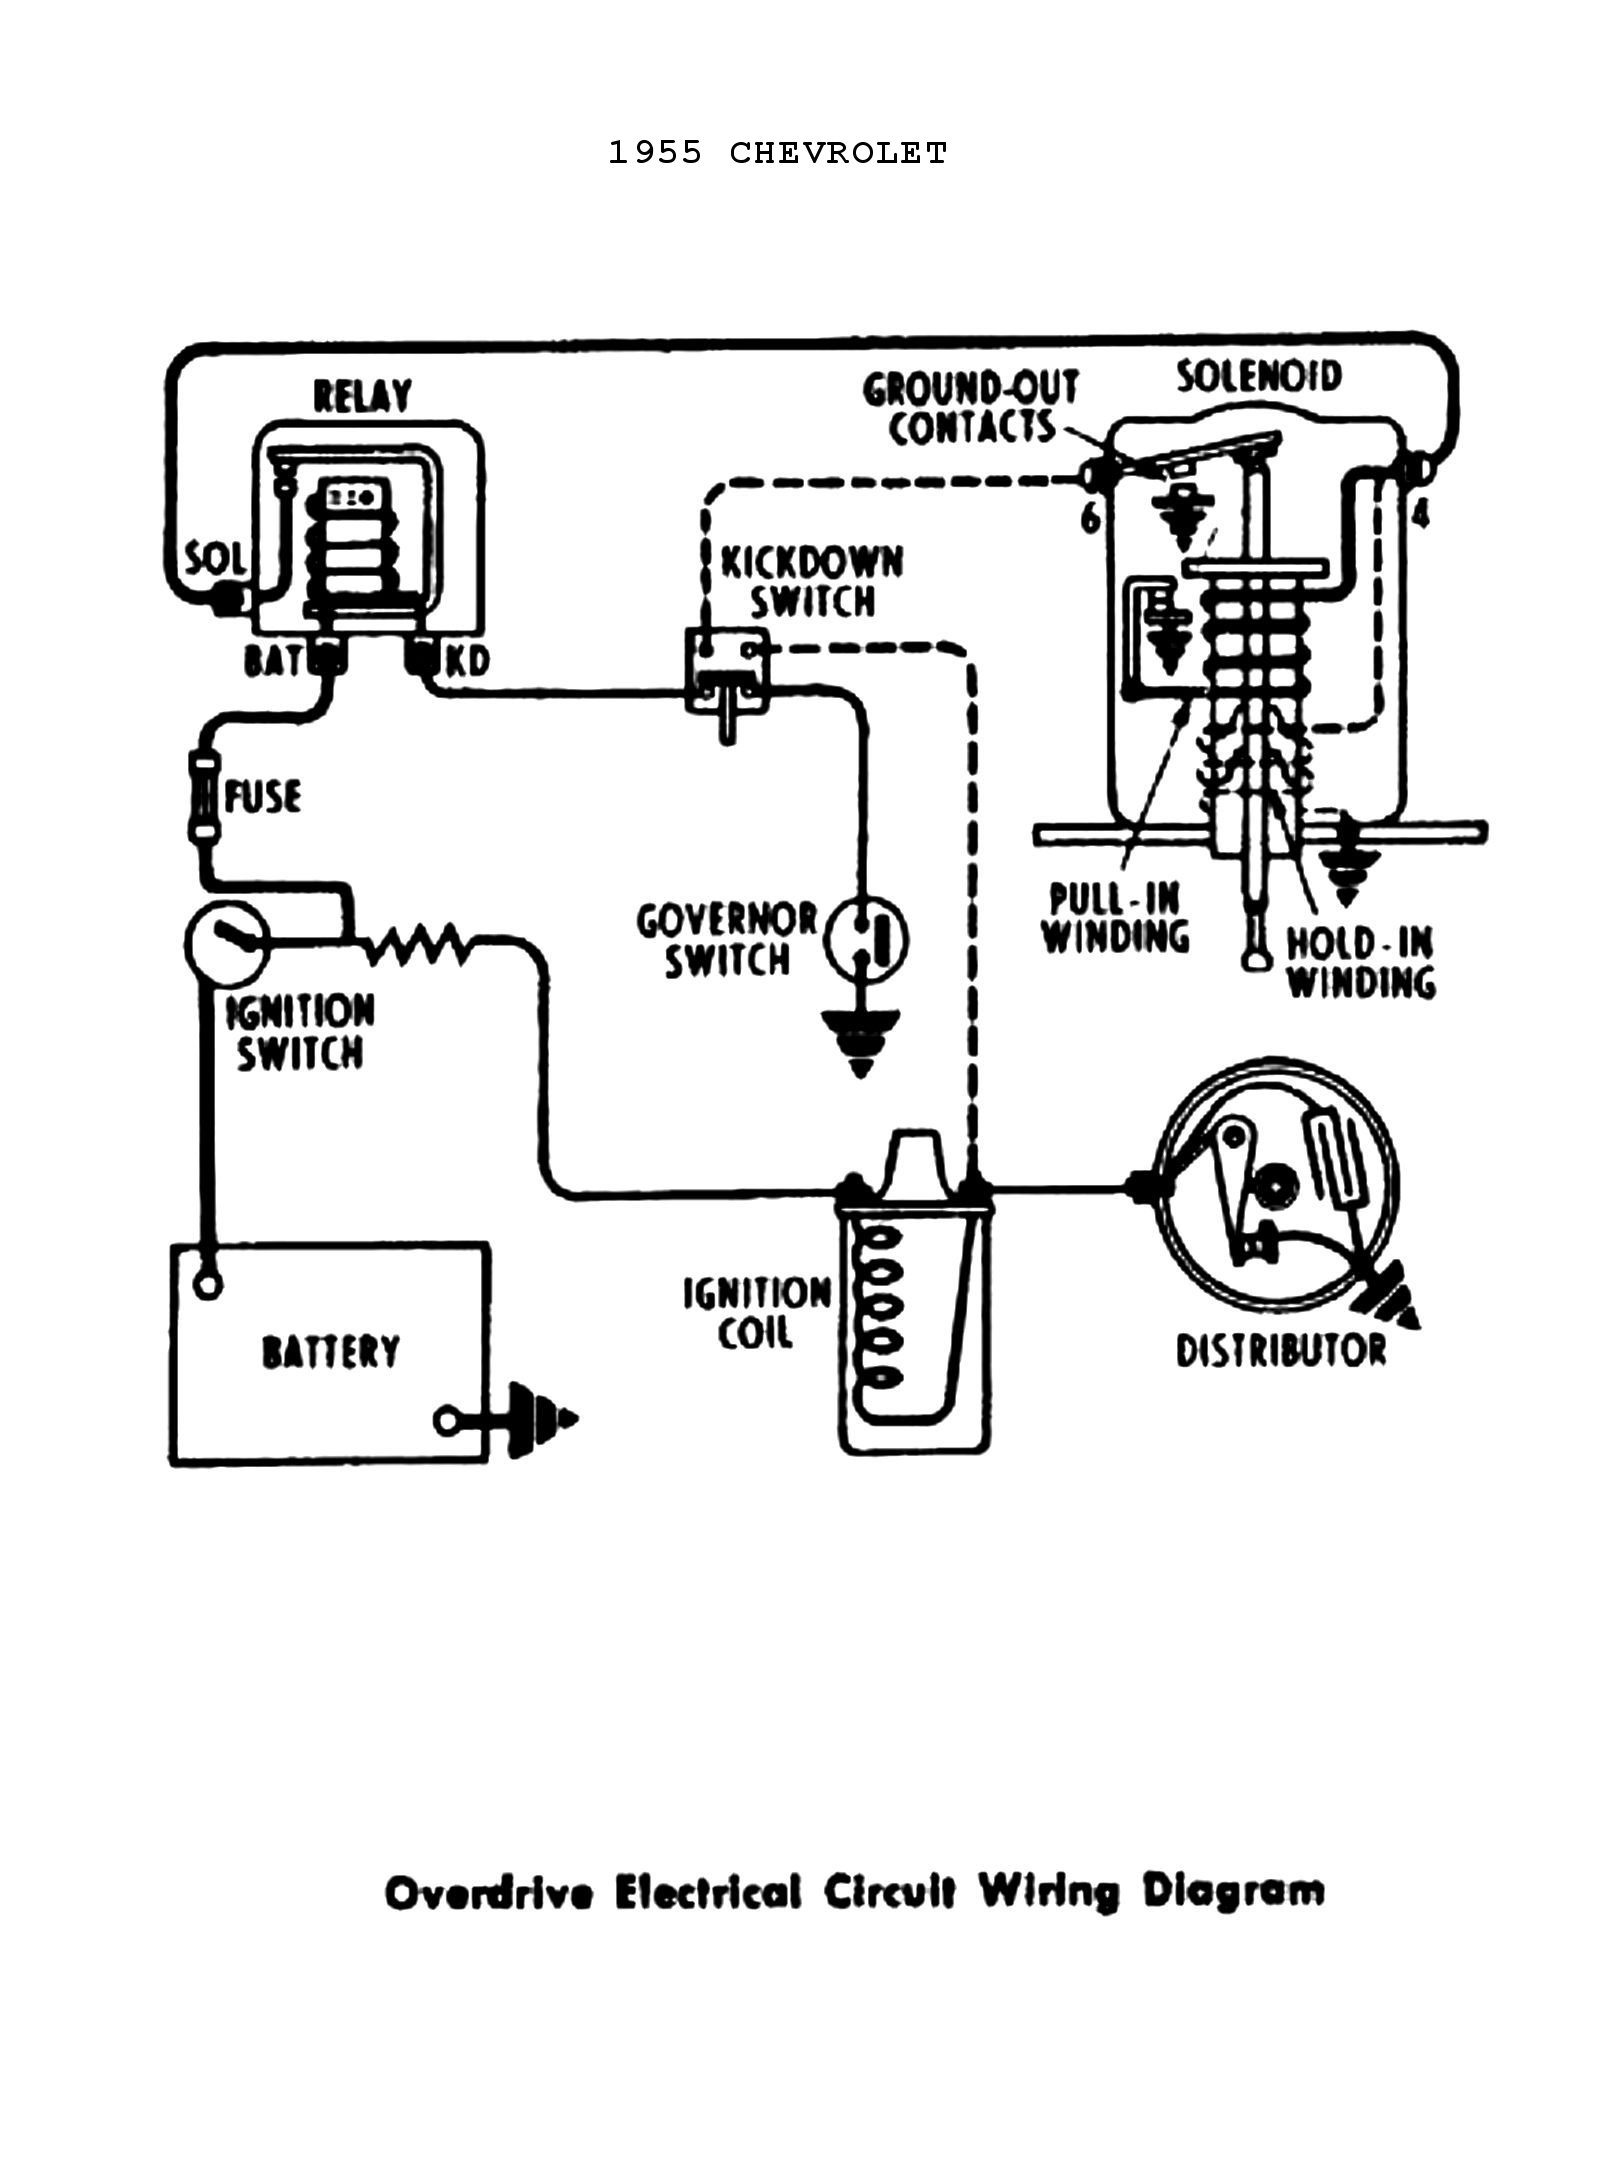 6 Volt Positive Ground Wiring Diagram from chevy.oldcarmanualproject.com